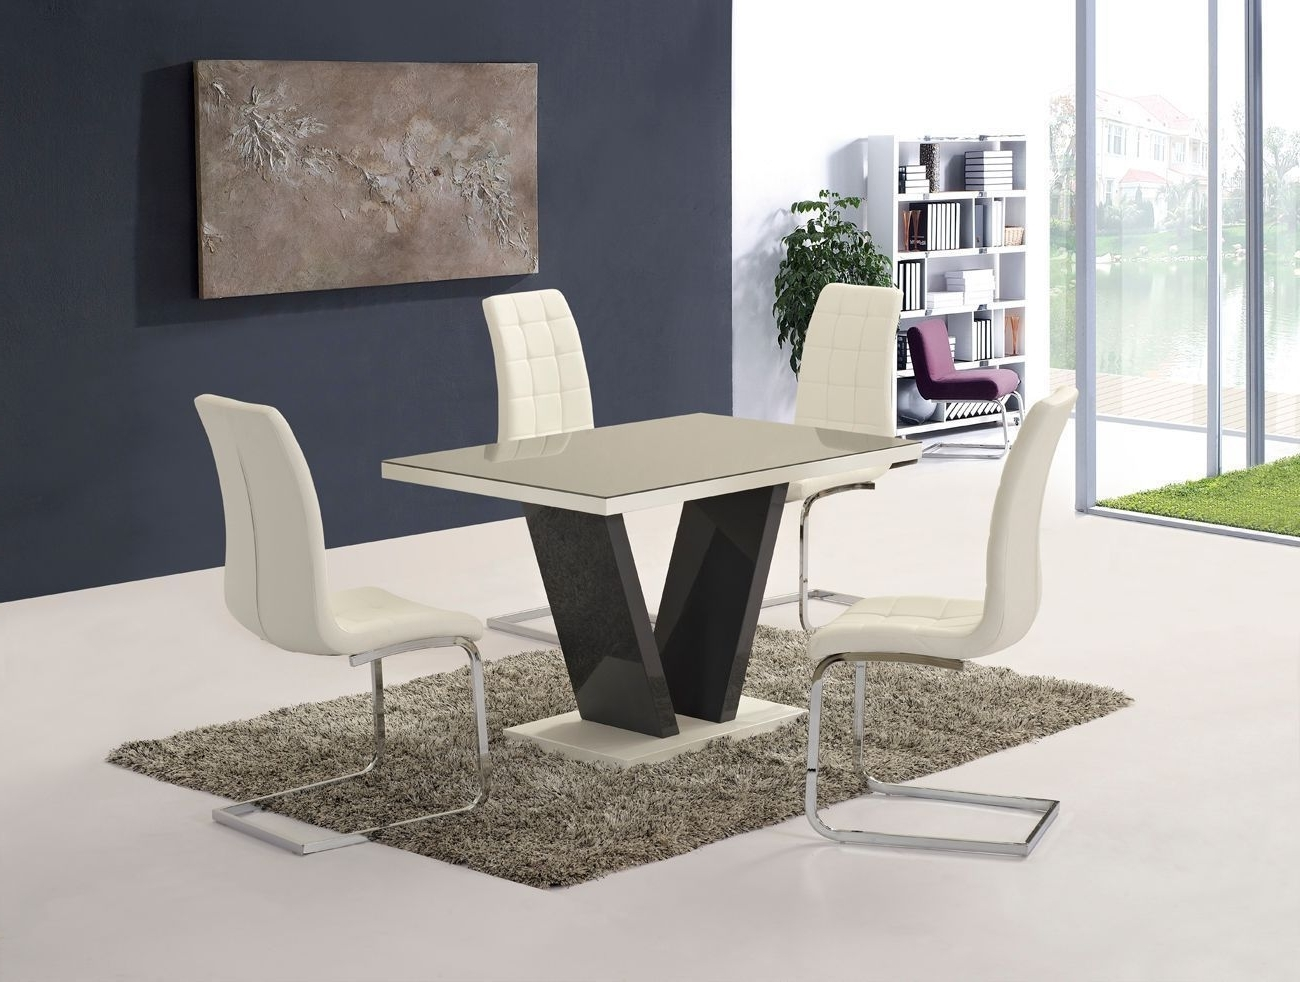 Grey High Gloss Glass Dining Table And 6 White Chairs -Homegenies with regard to Most Up-to-Date Cream Gloss Dining Tables And Chairs